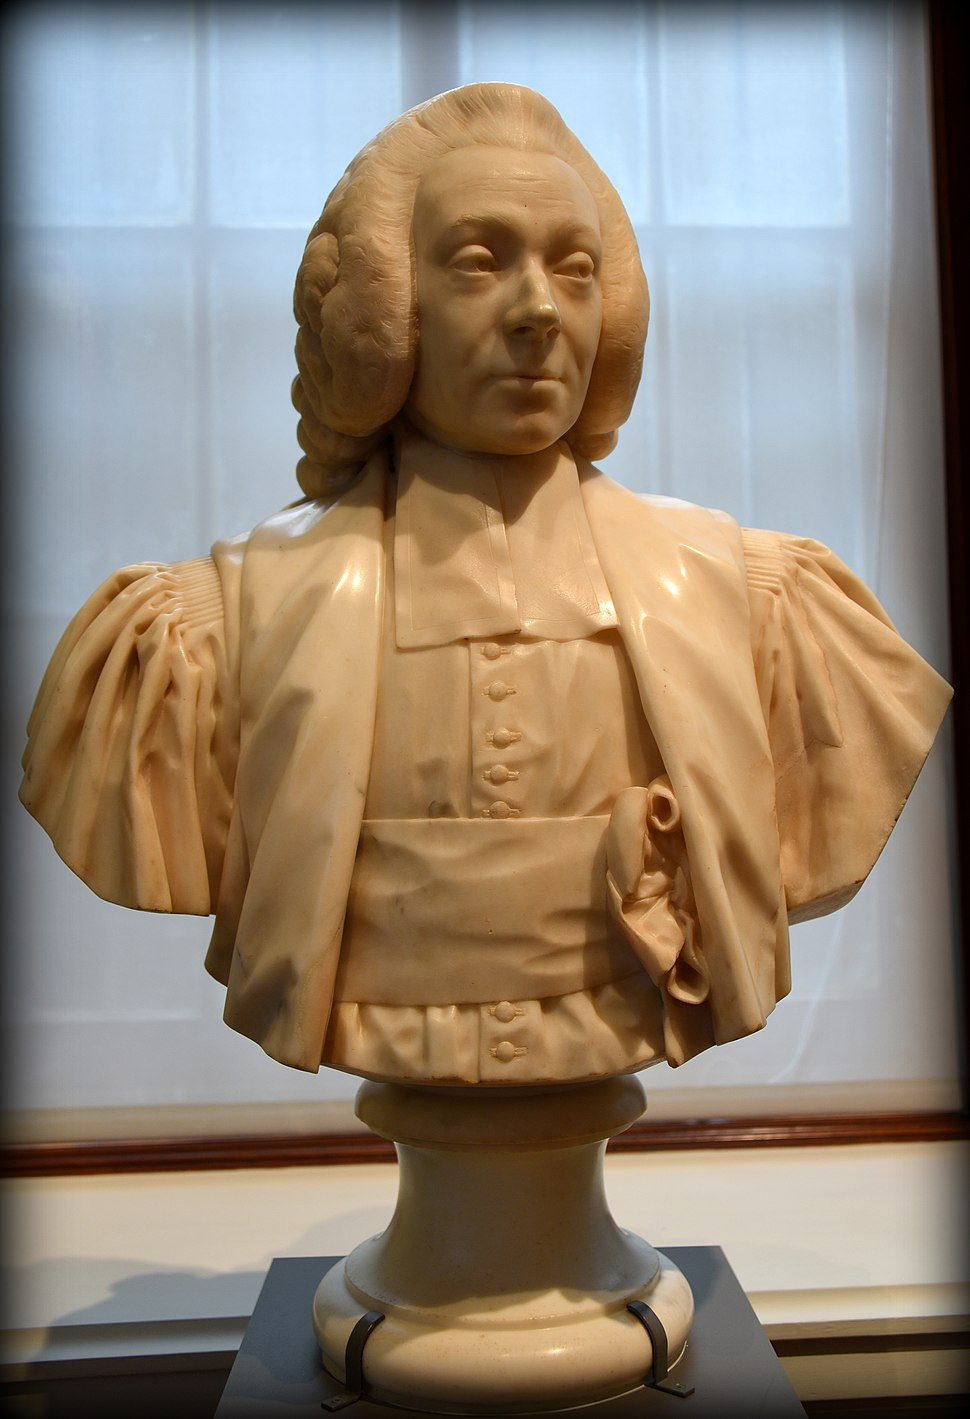 Bust of the Marquis de Miromesnil, 1775 CE. From Paris, France. By Jean-Antoine Houdon. The Victoria and Albert Museum, London